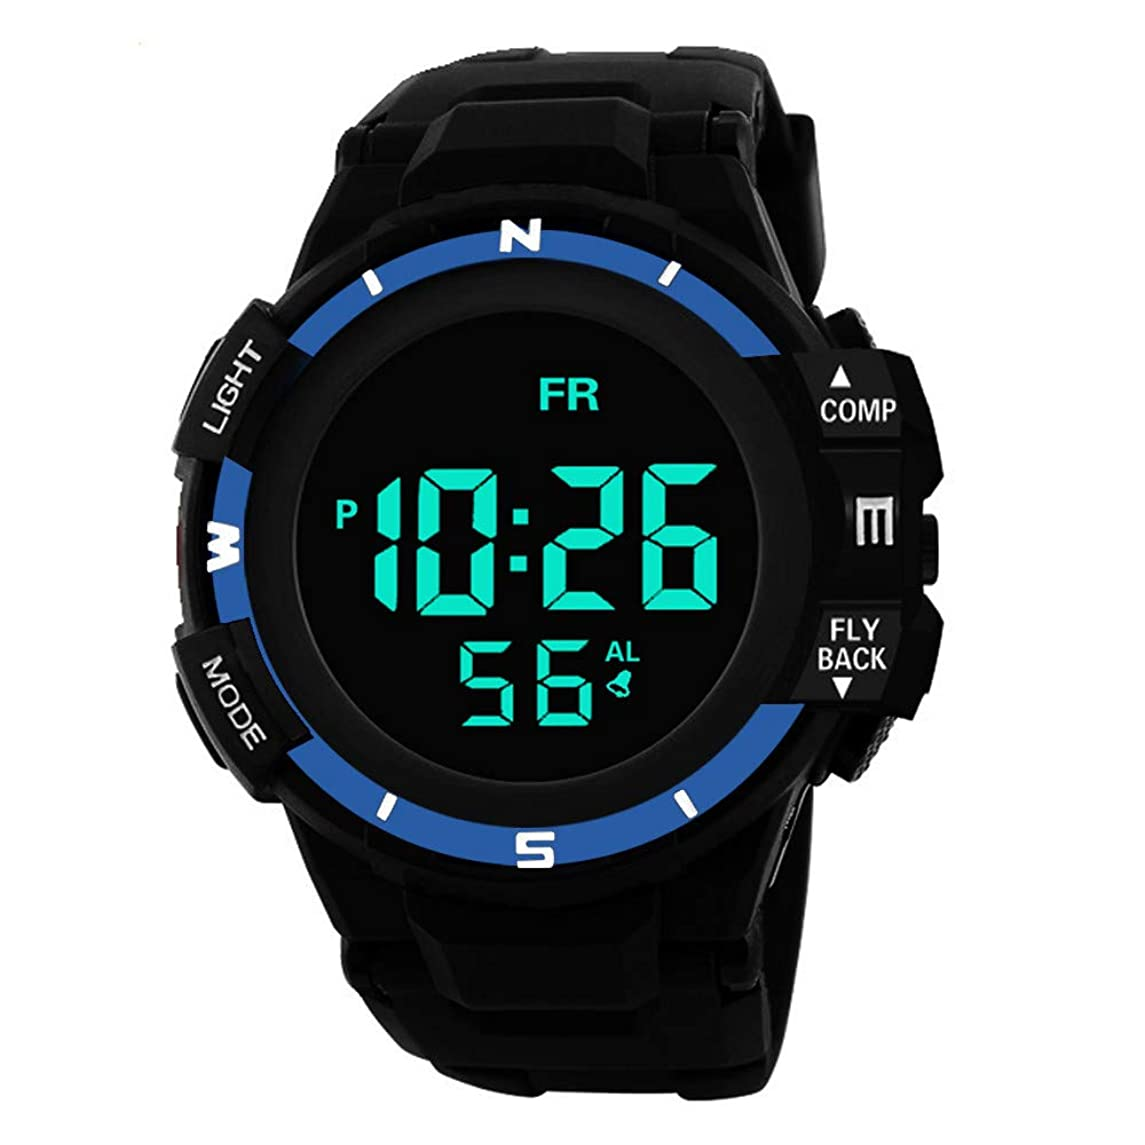 Mens Watches Clearance,Analog Digital Military Sport LED Waterproof Wrist Watch(Blue)